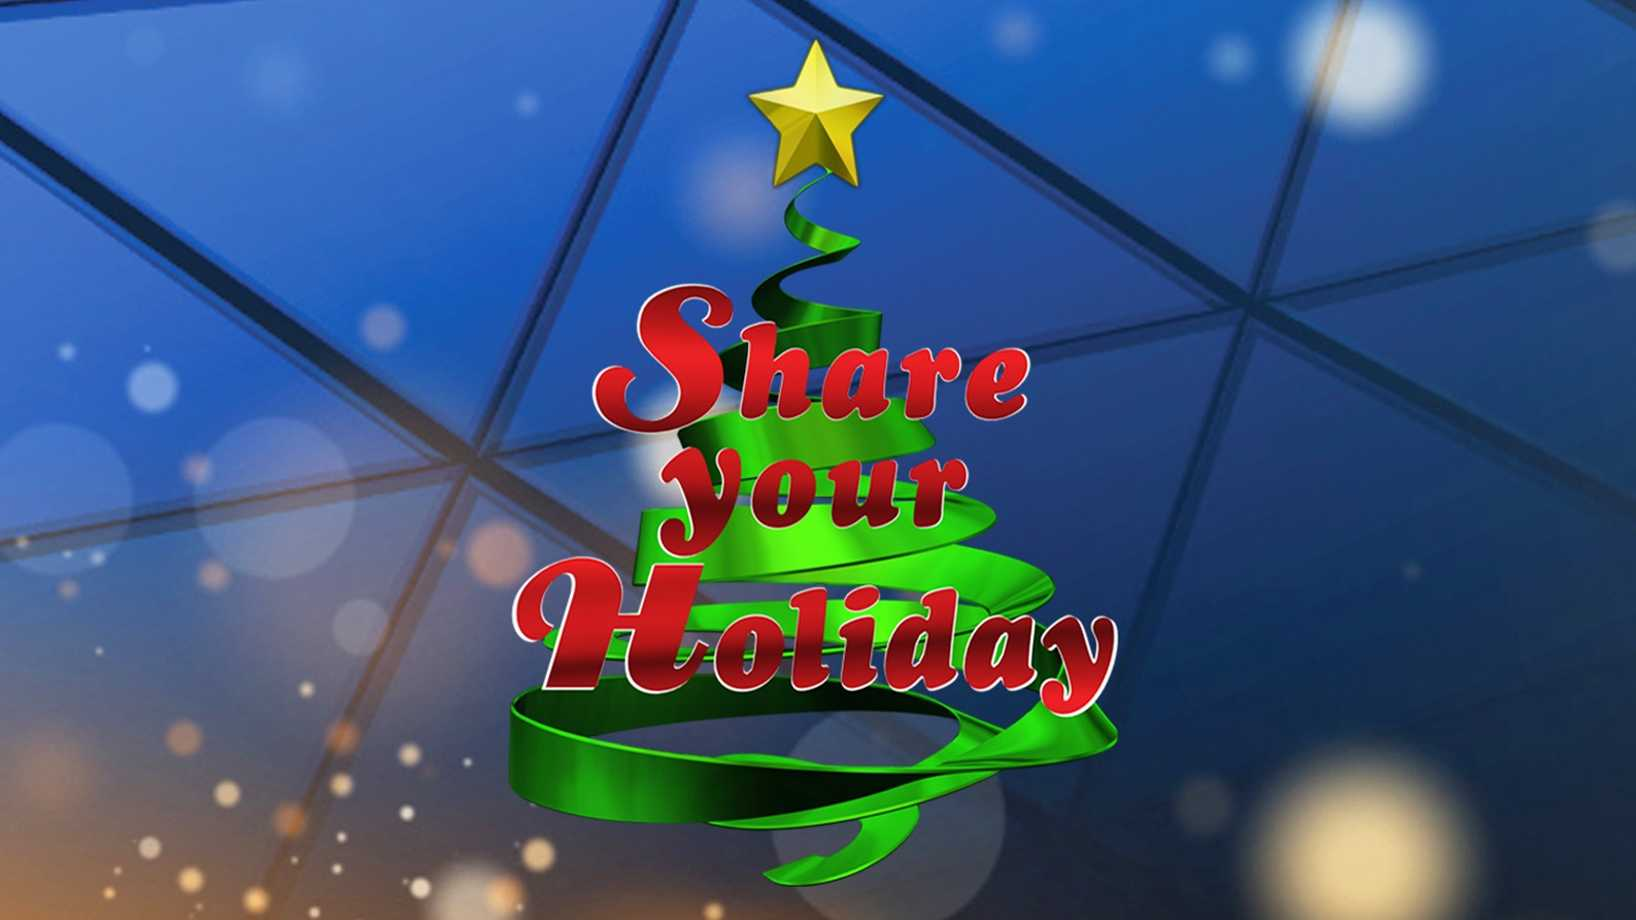 KSBW Share Your Holiday